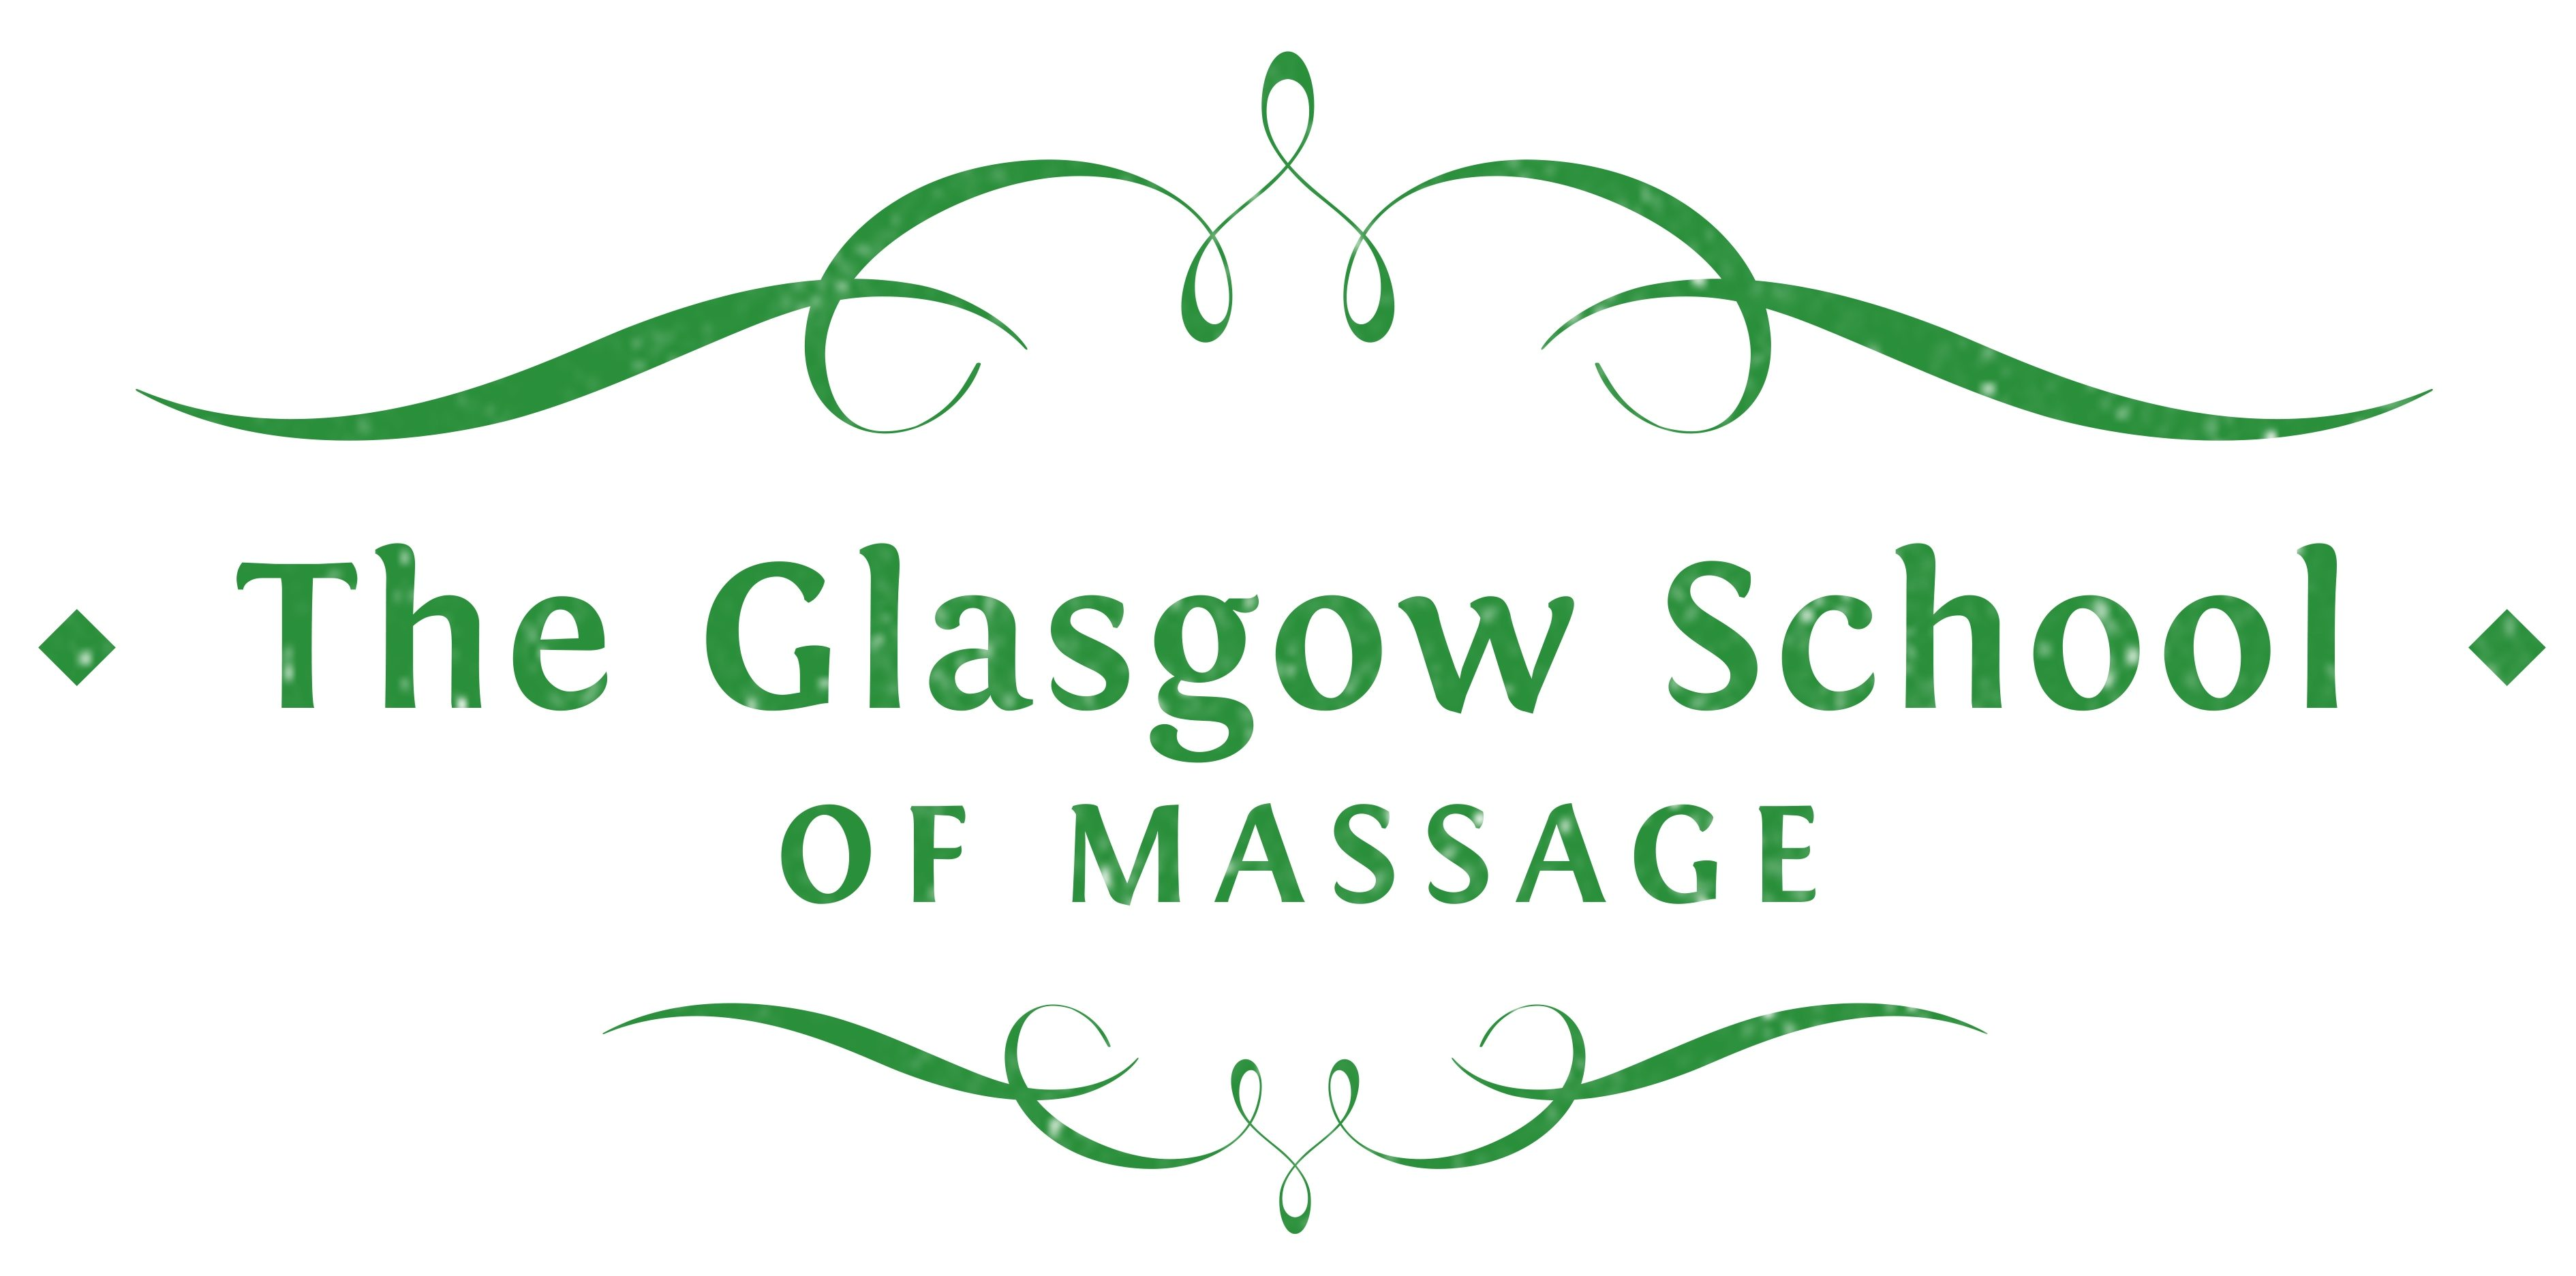 The Glasgow School of Massage